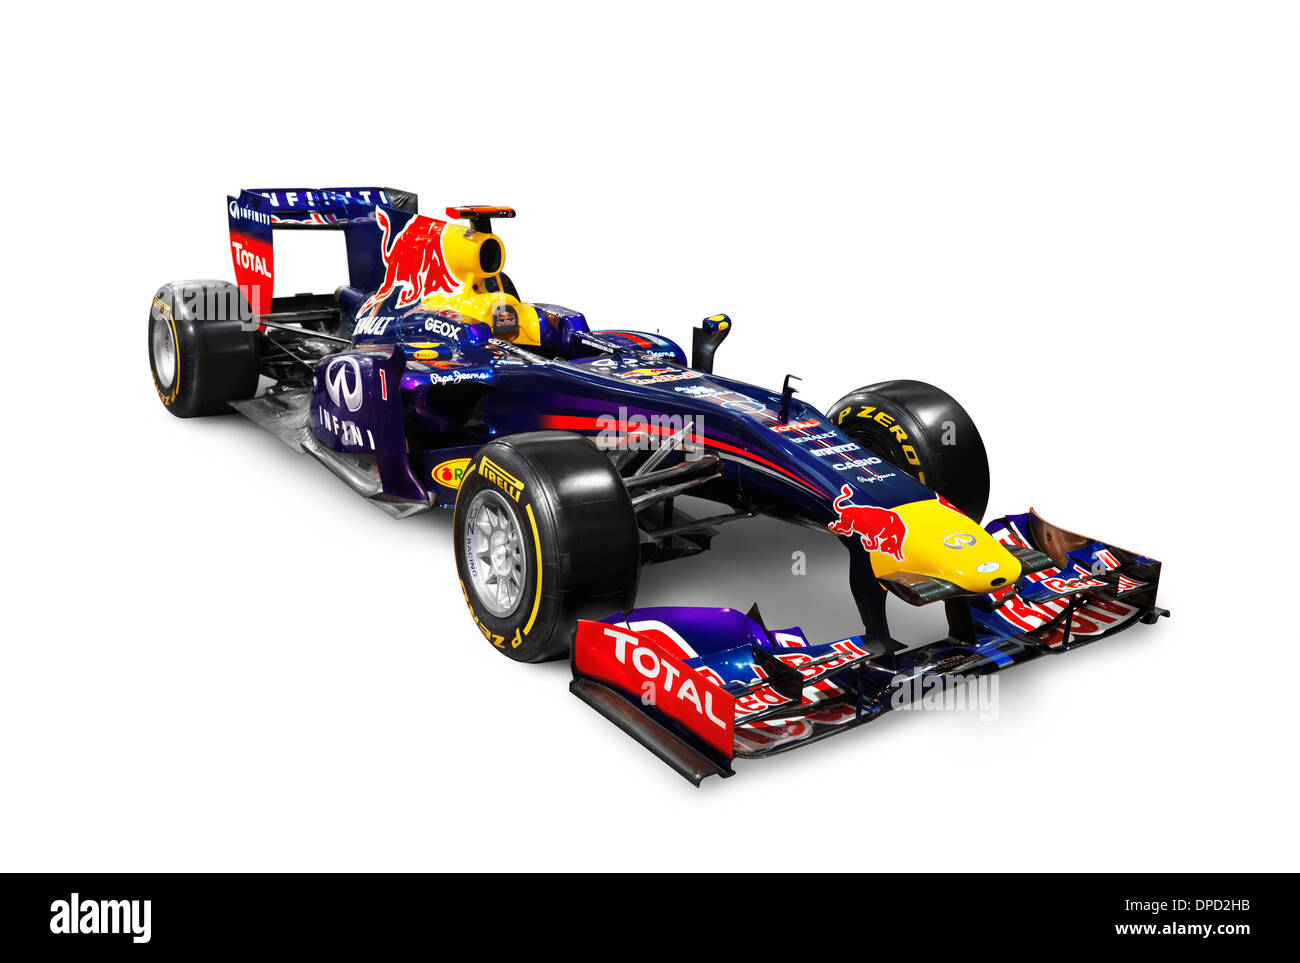 2013 Infinity Red Bull Formula One race car RB9 isolated on white background with clipping path - Stock Image